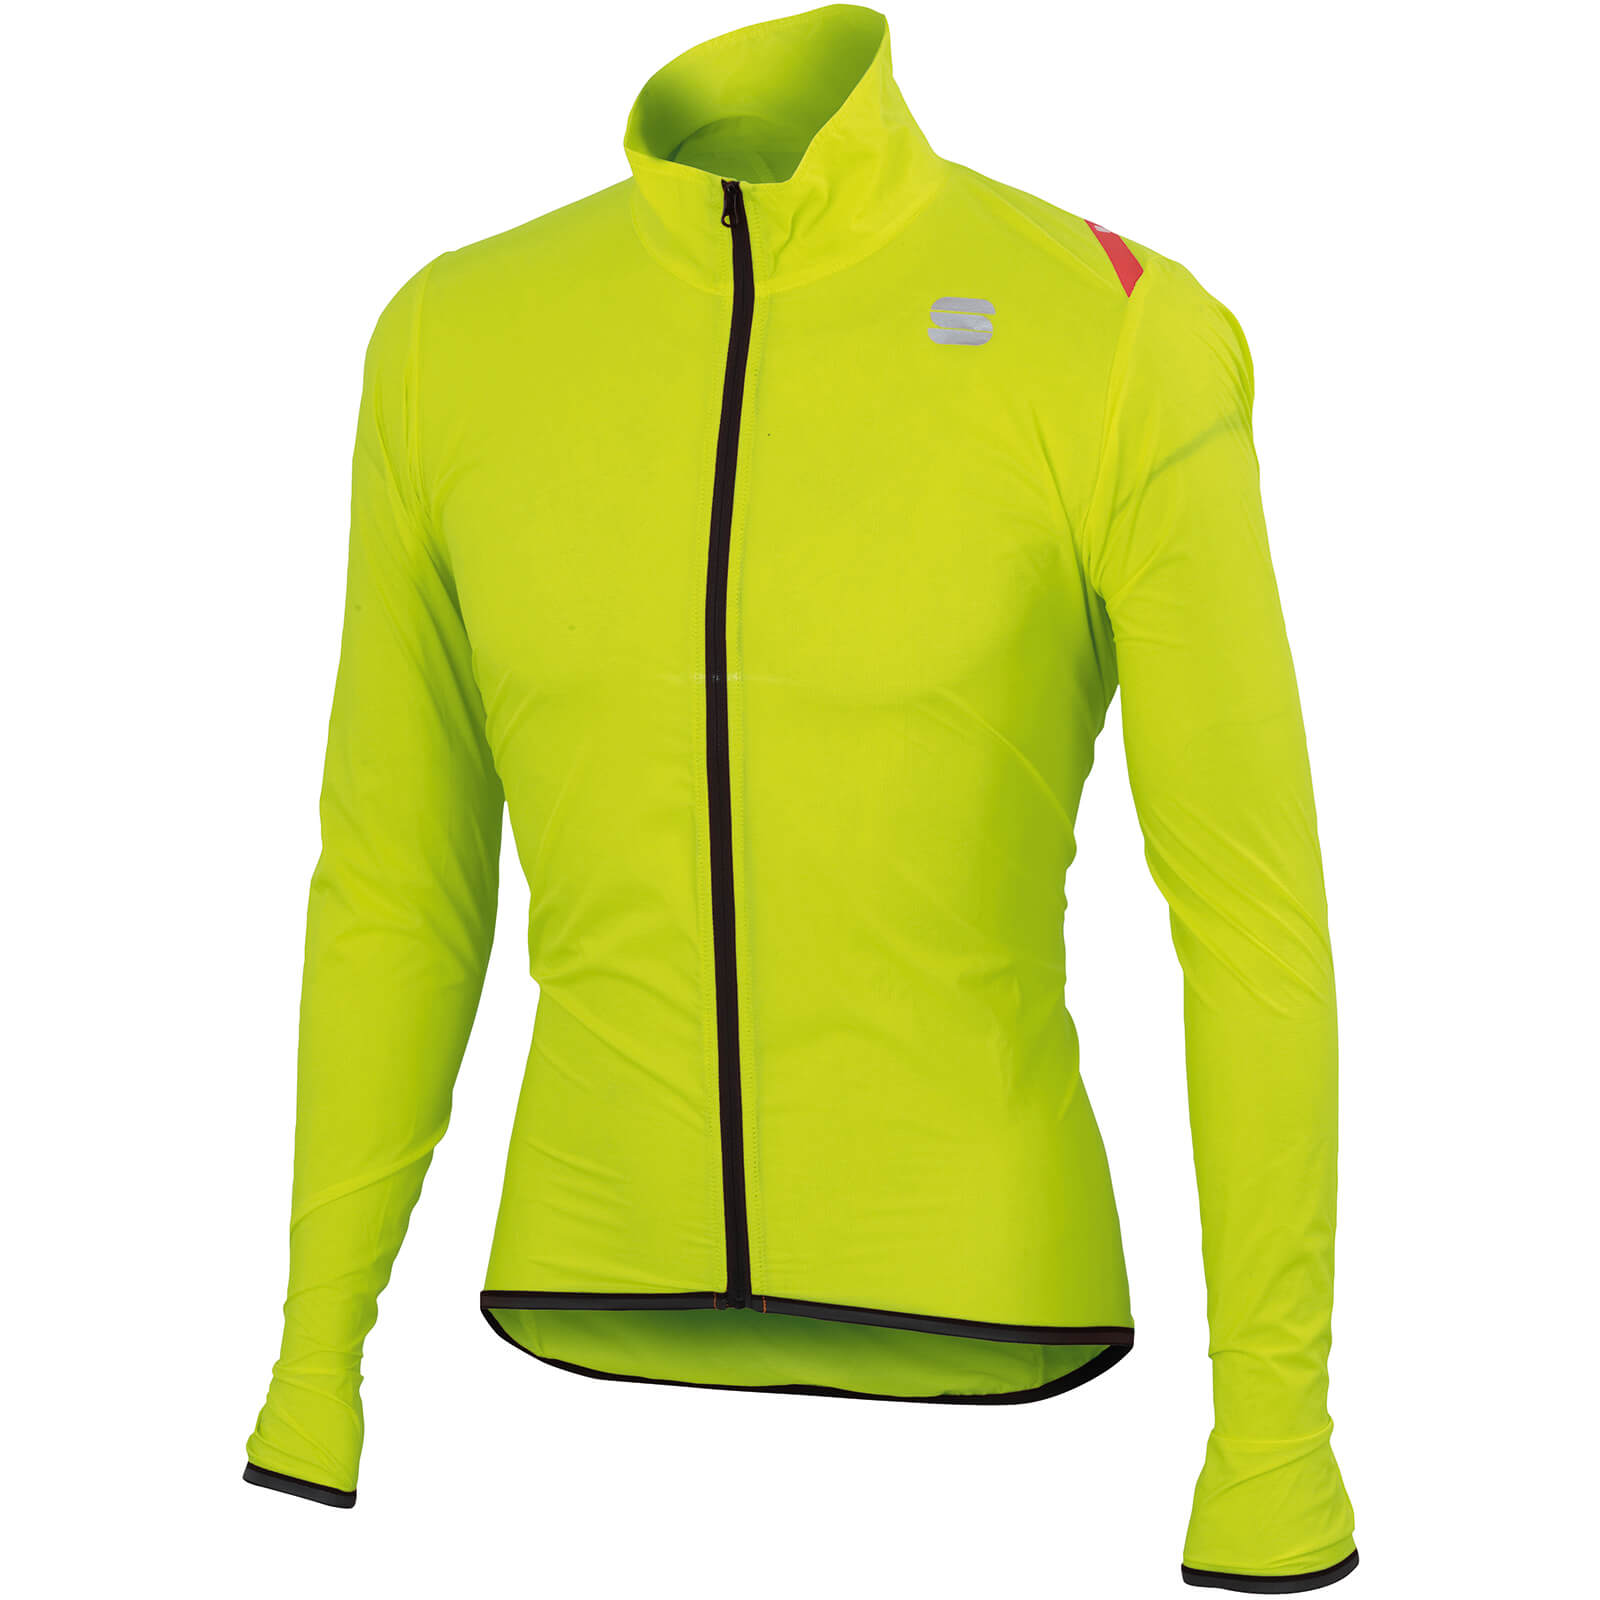 Sportful Hot Pack 6 Jacket - Yellow Fluo